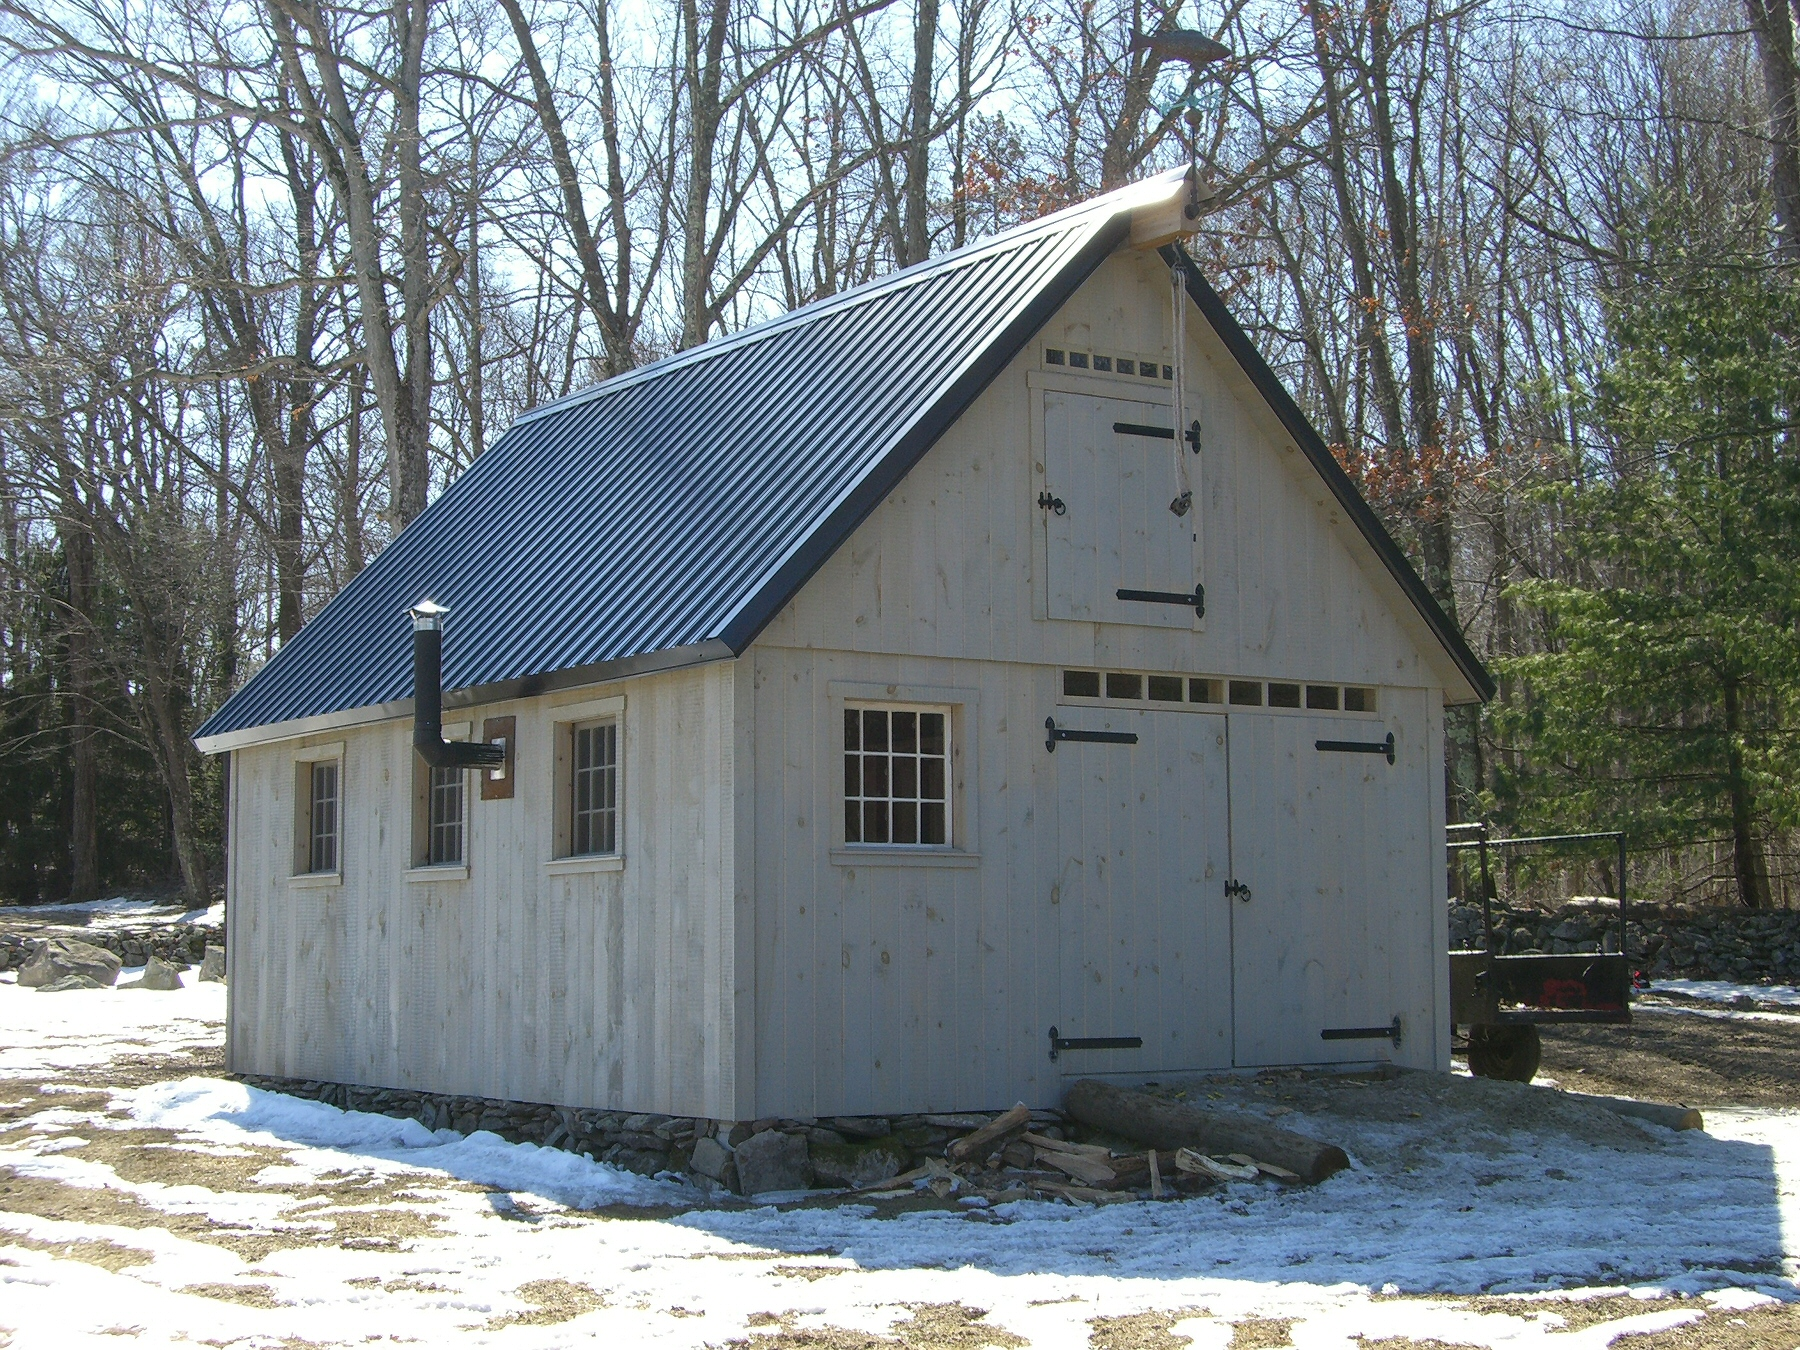 16' x 20' Post and Beam Barn